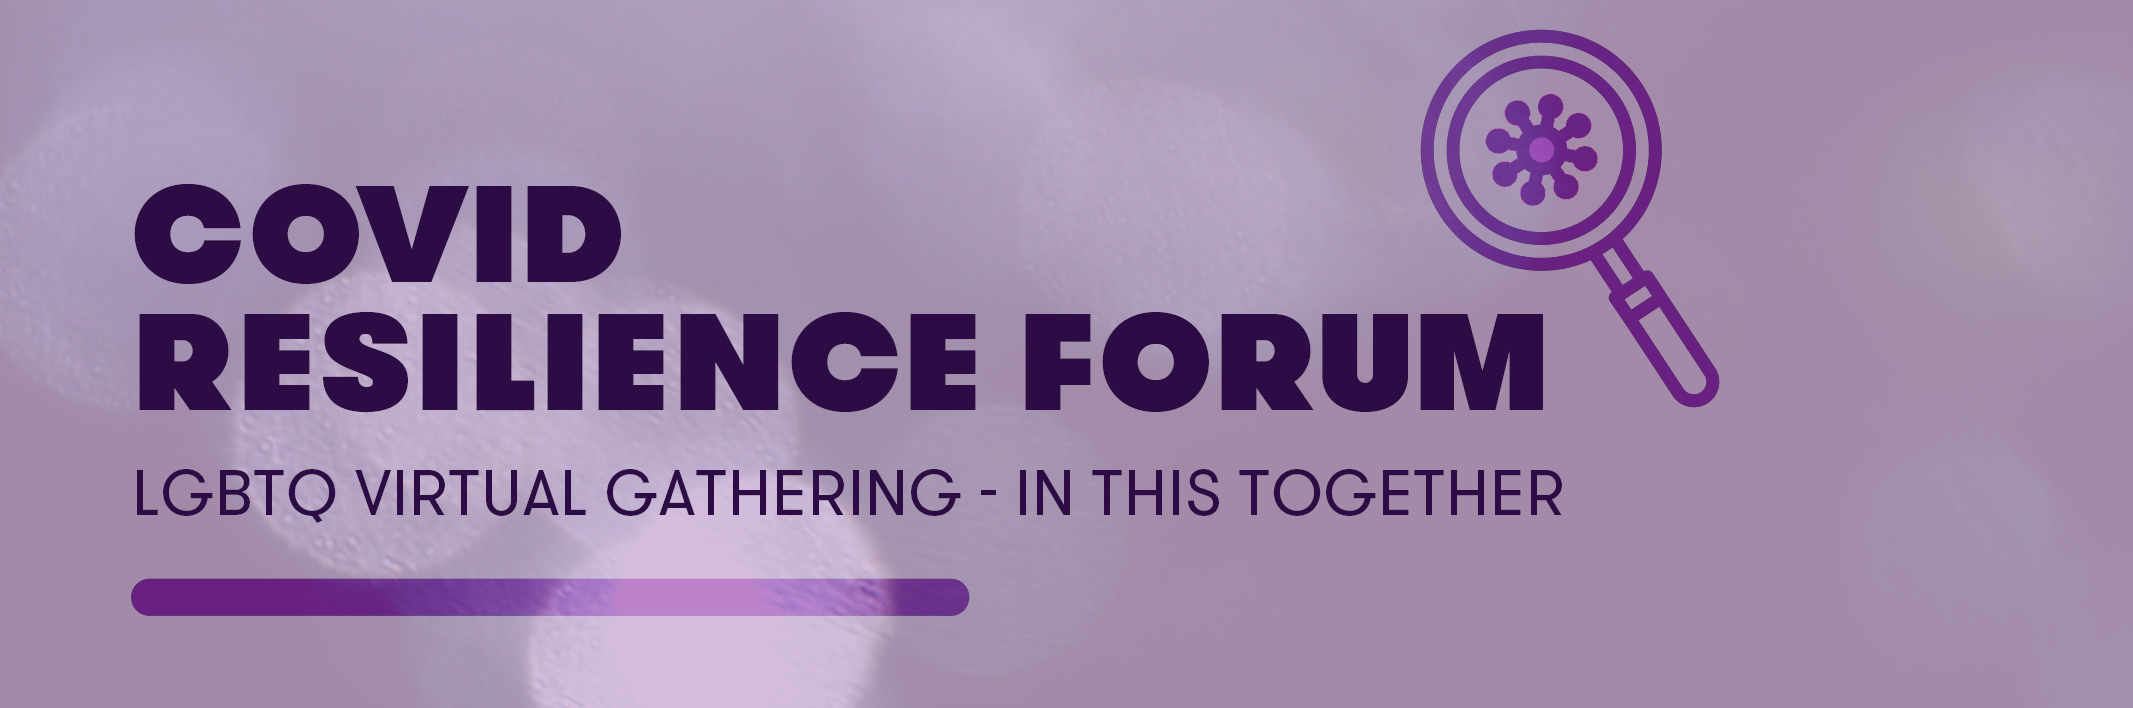 COVID Resilience Forum